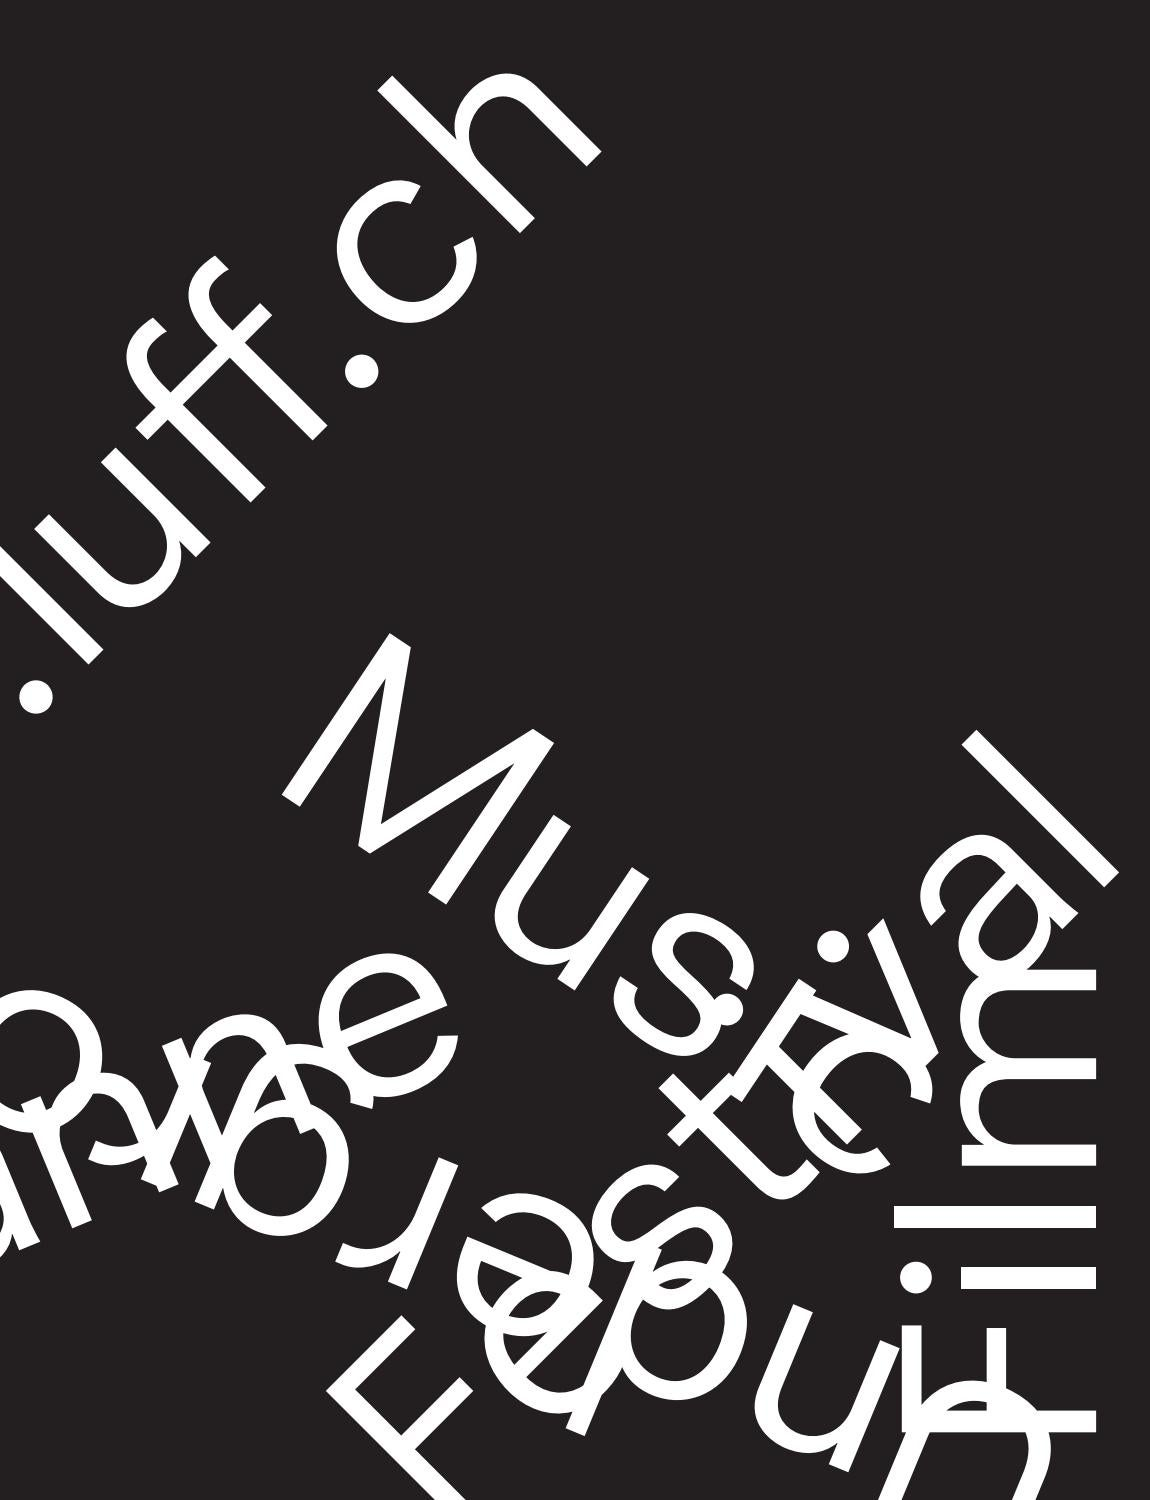 Luff 2015 Programme By Luff Lausanne Underground Film Music Images, Photos, Reviews